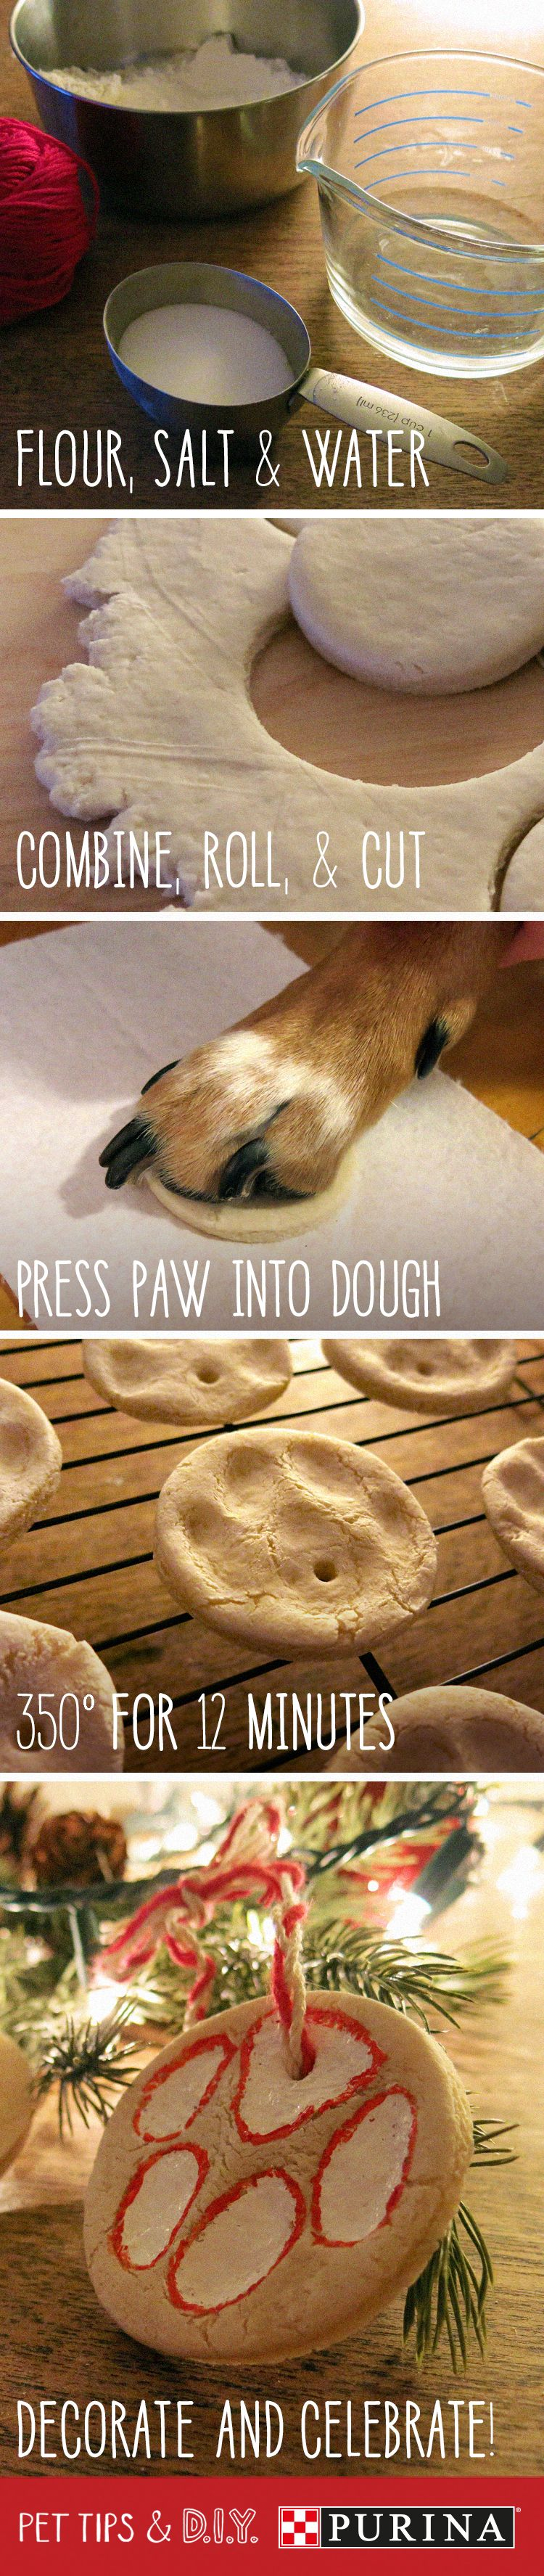 Make A Diy Paw Print Ornament To Celebrate The Holiday Season With